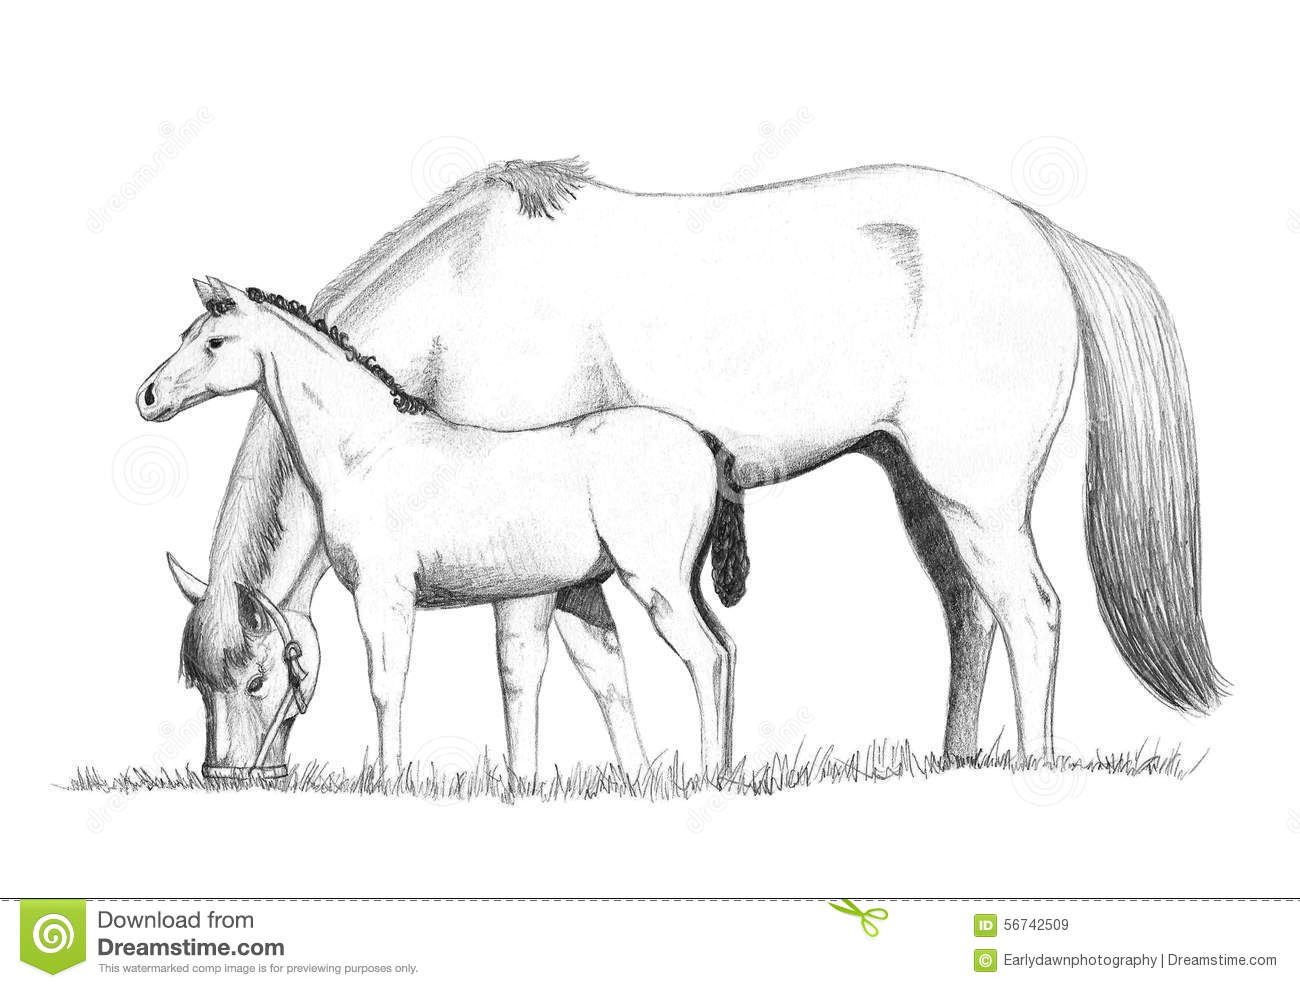 how to draw a horse standing up how to draw a horse standing up a how to standing horse up draw